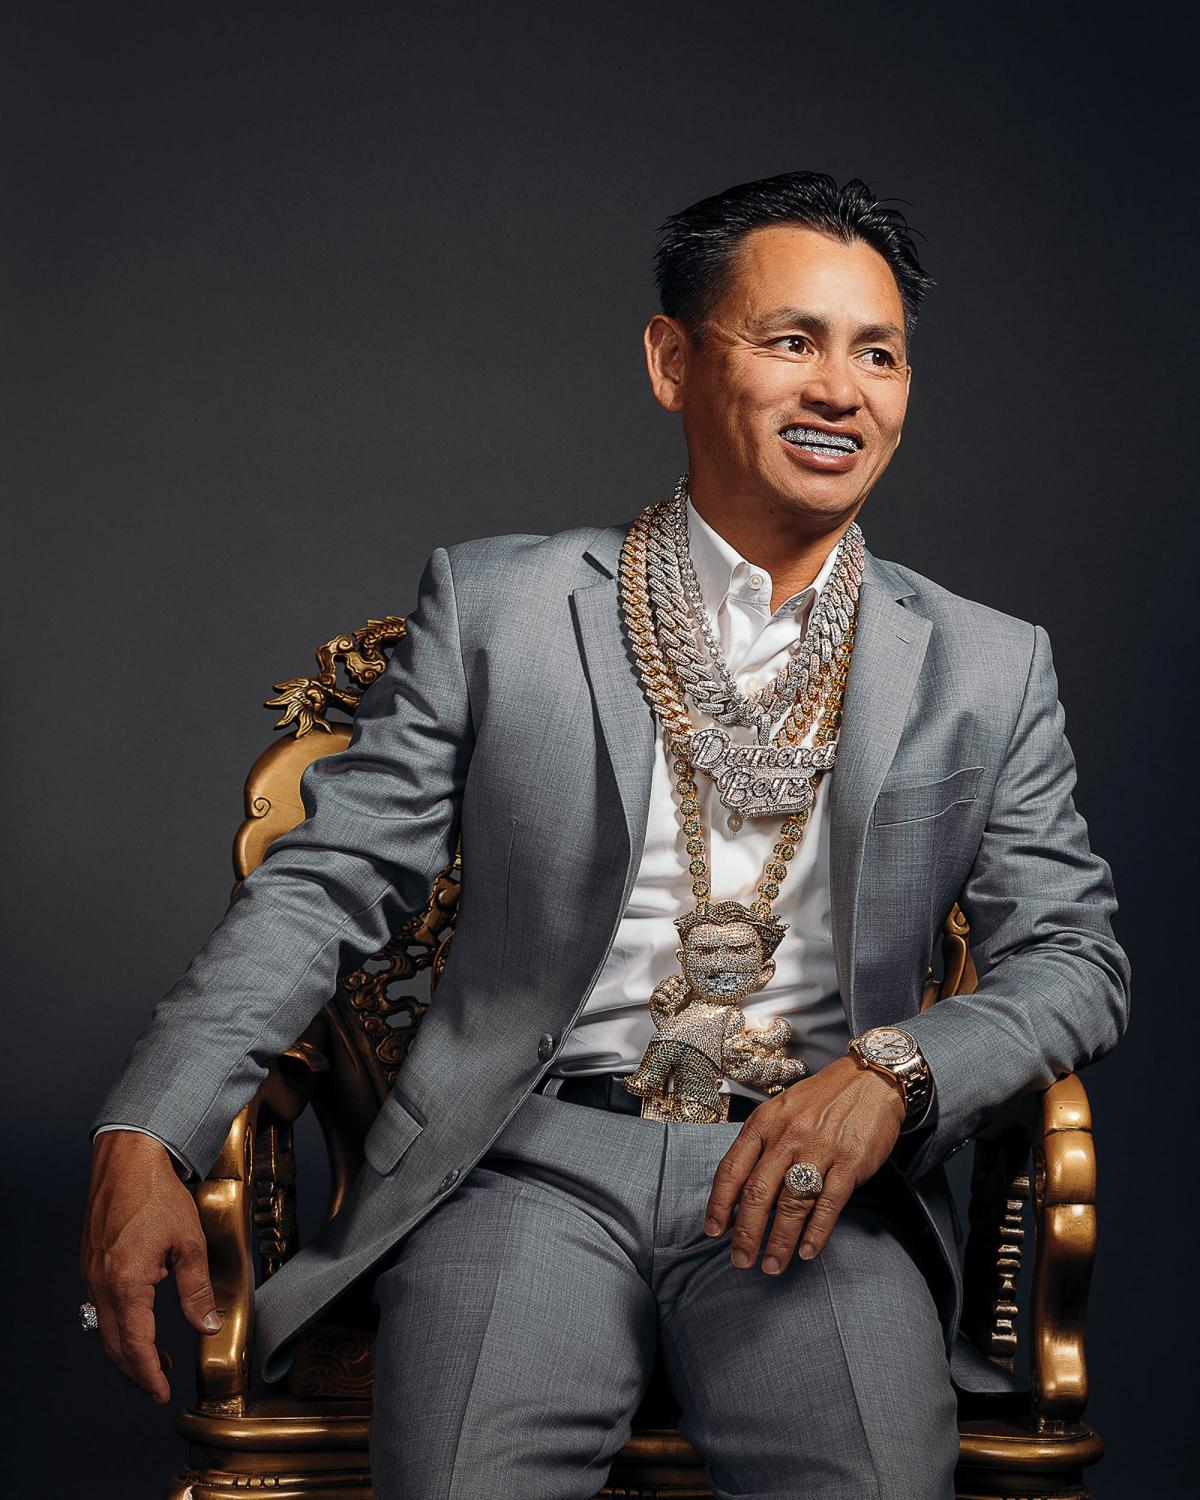 Johnny Dang - Celebrity biography, zodiac sign and famous ...